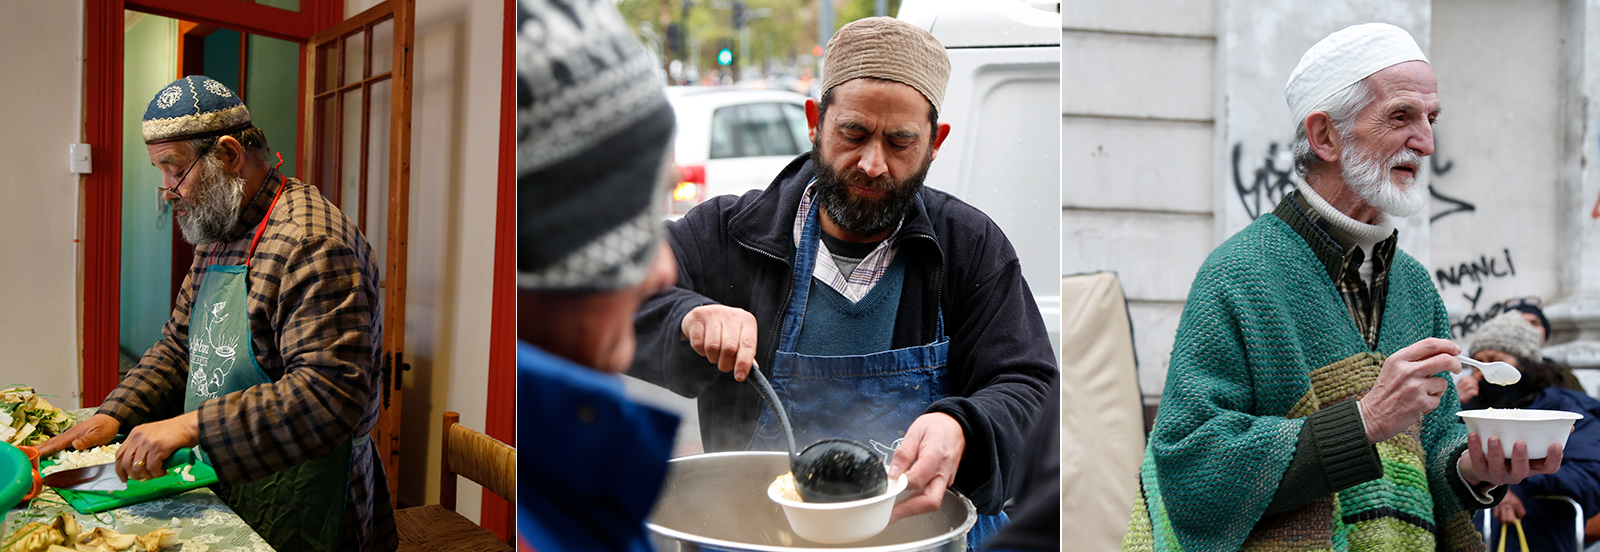 Preparation, delivery, and distribution of food to homeless and poor Chileans in Santiago by Muslim converts